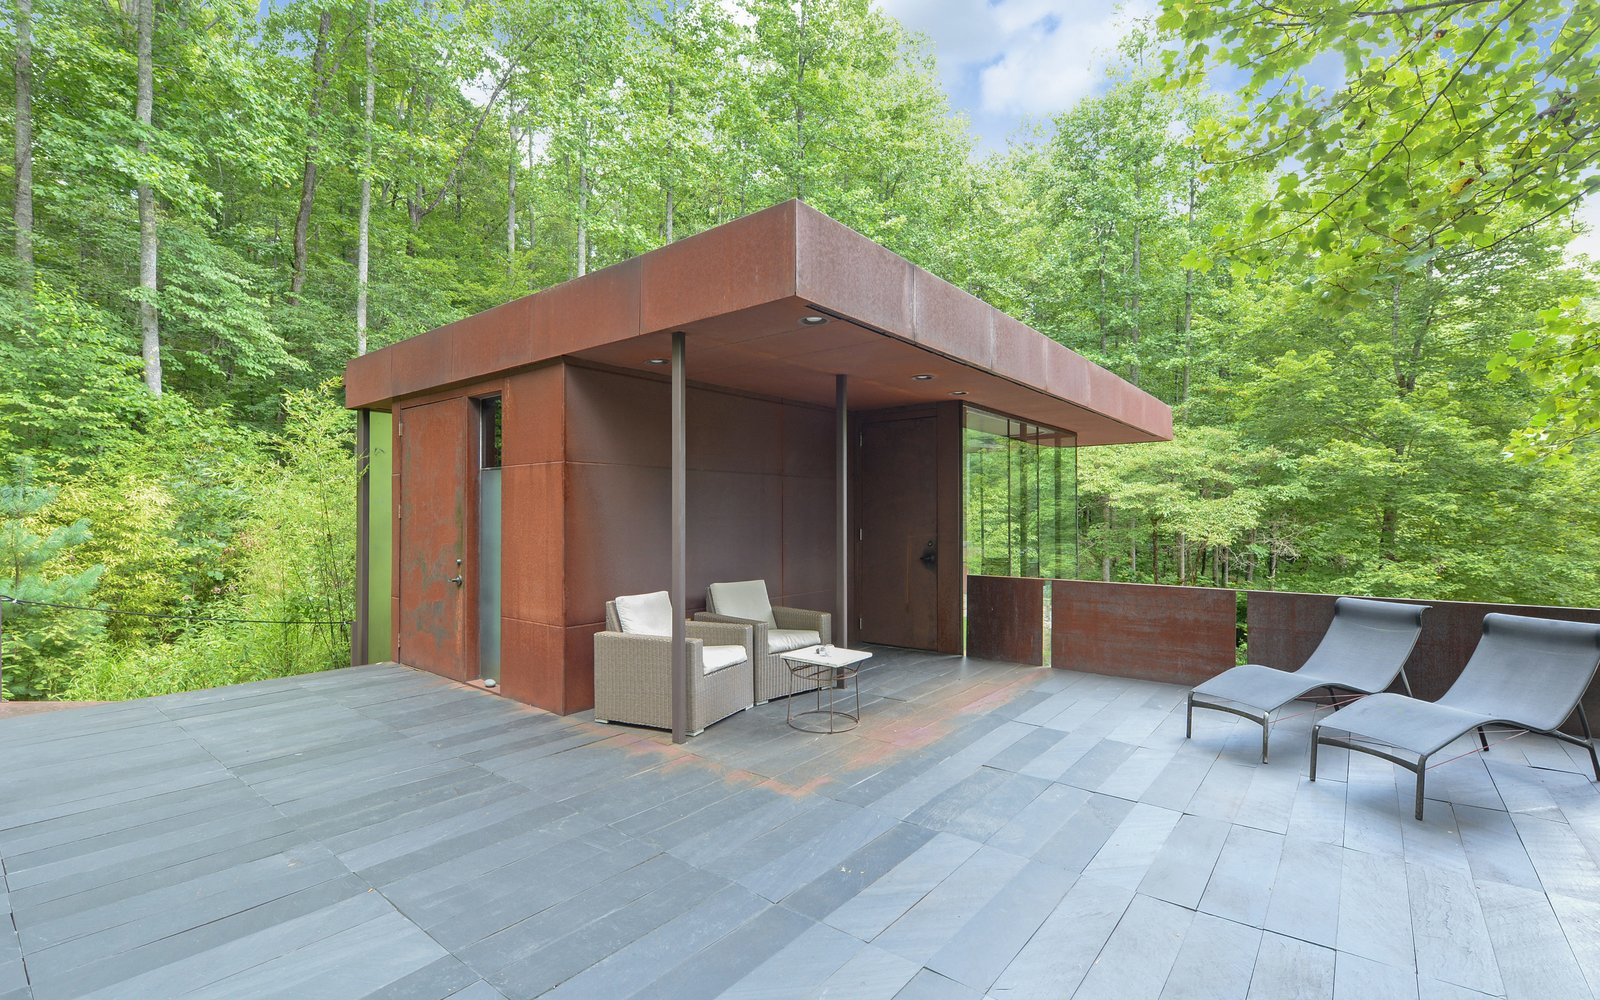 Rooftop, Metal Patio, Porch, Deck, Stone Patio, Porch, Deck, Metal Fences, Wall, Exterior, Metal Roof Material, and Metal Siding Material 'Tree House' - Terrace  Mountain House Modern